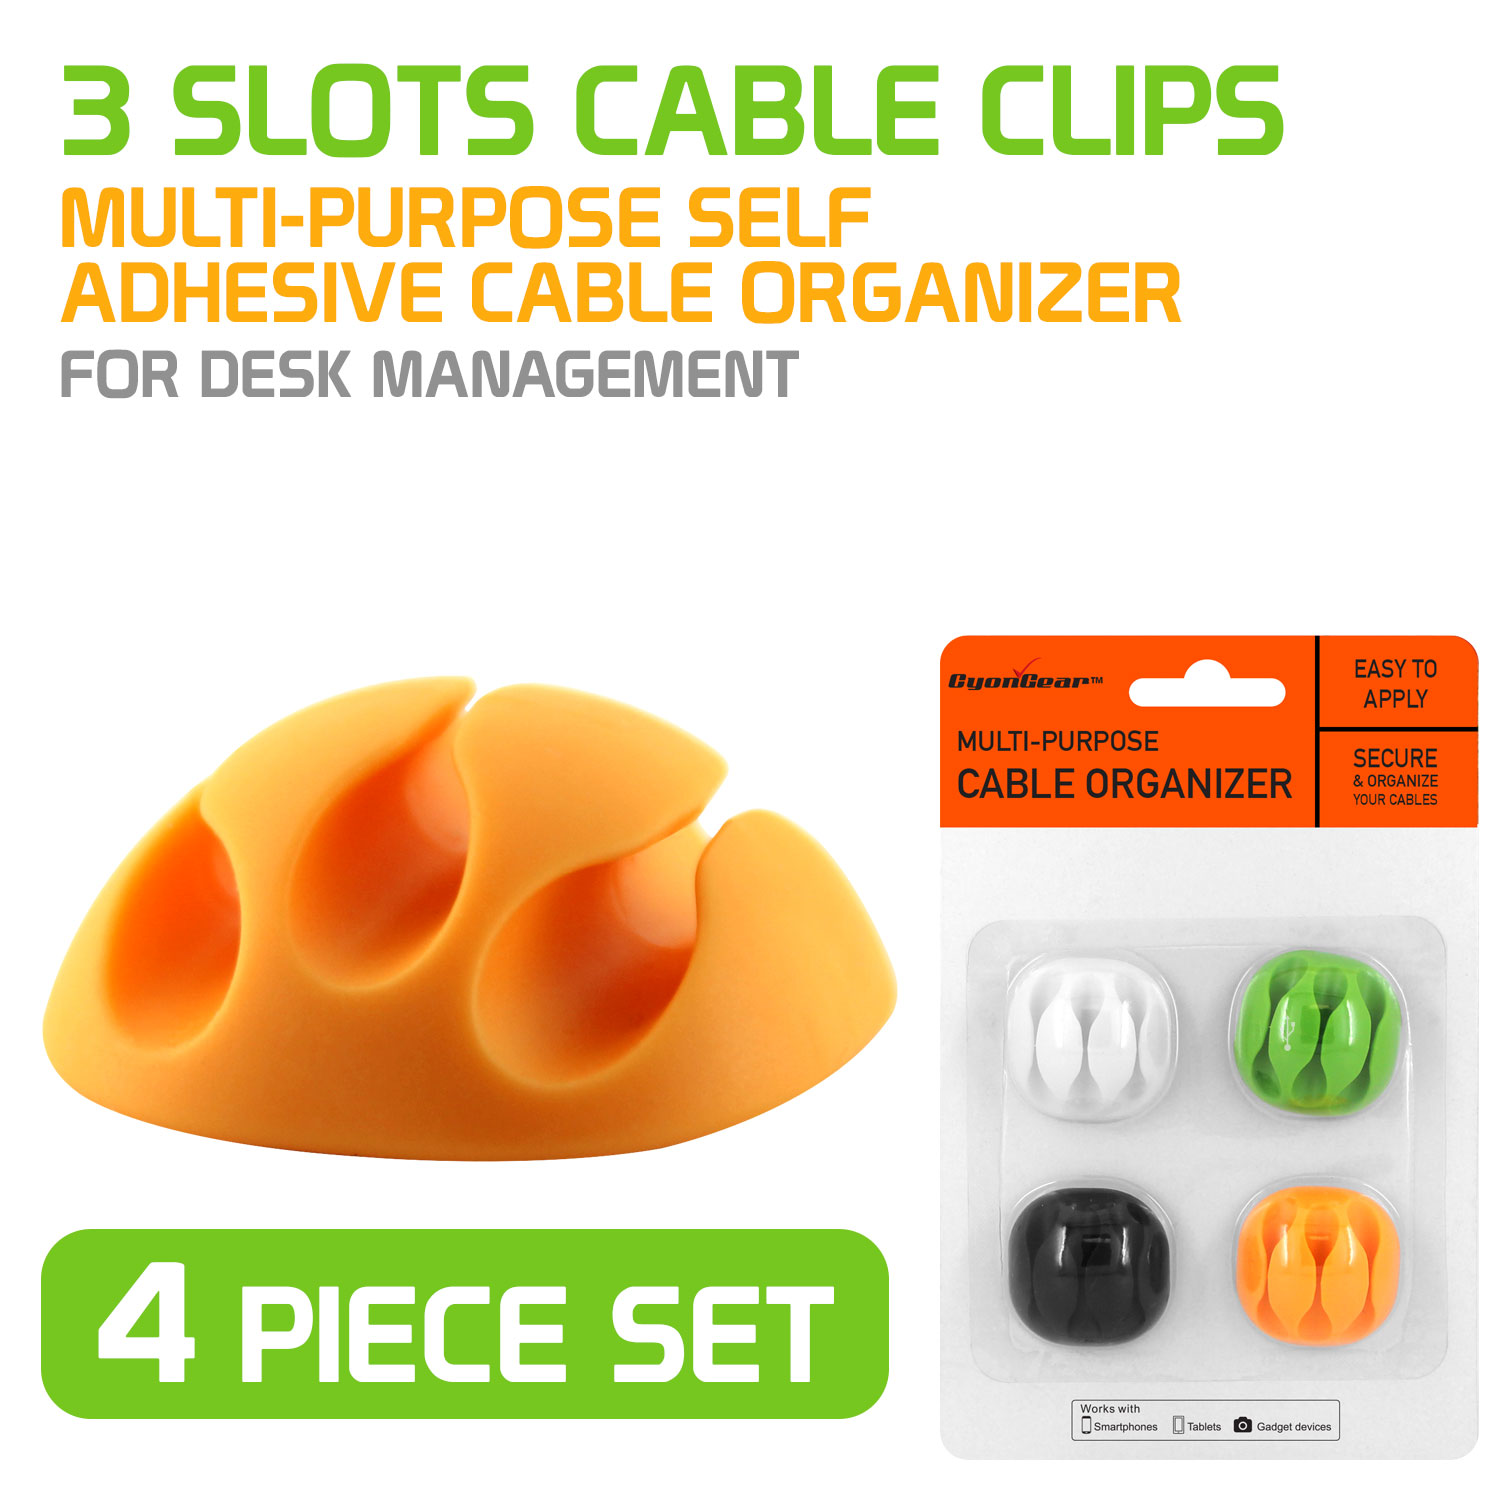 4 Piece Set of Multi-Purpose Self Adhesive 3 Slot Cable Organizer / Cable Clip